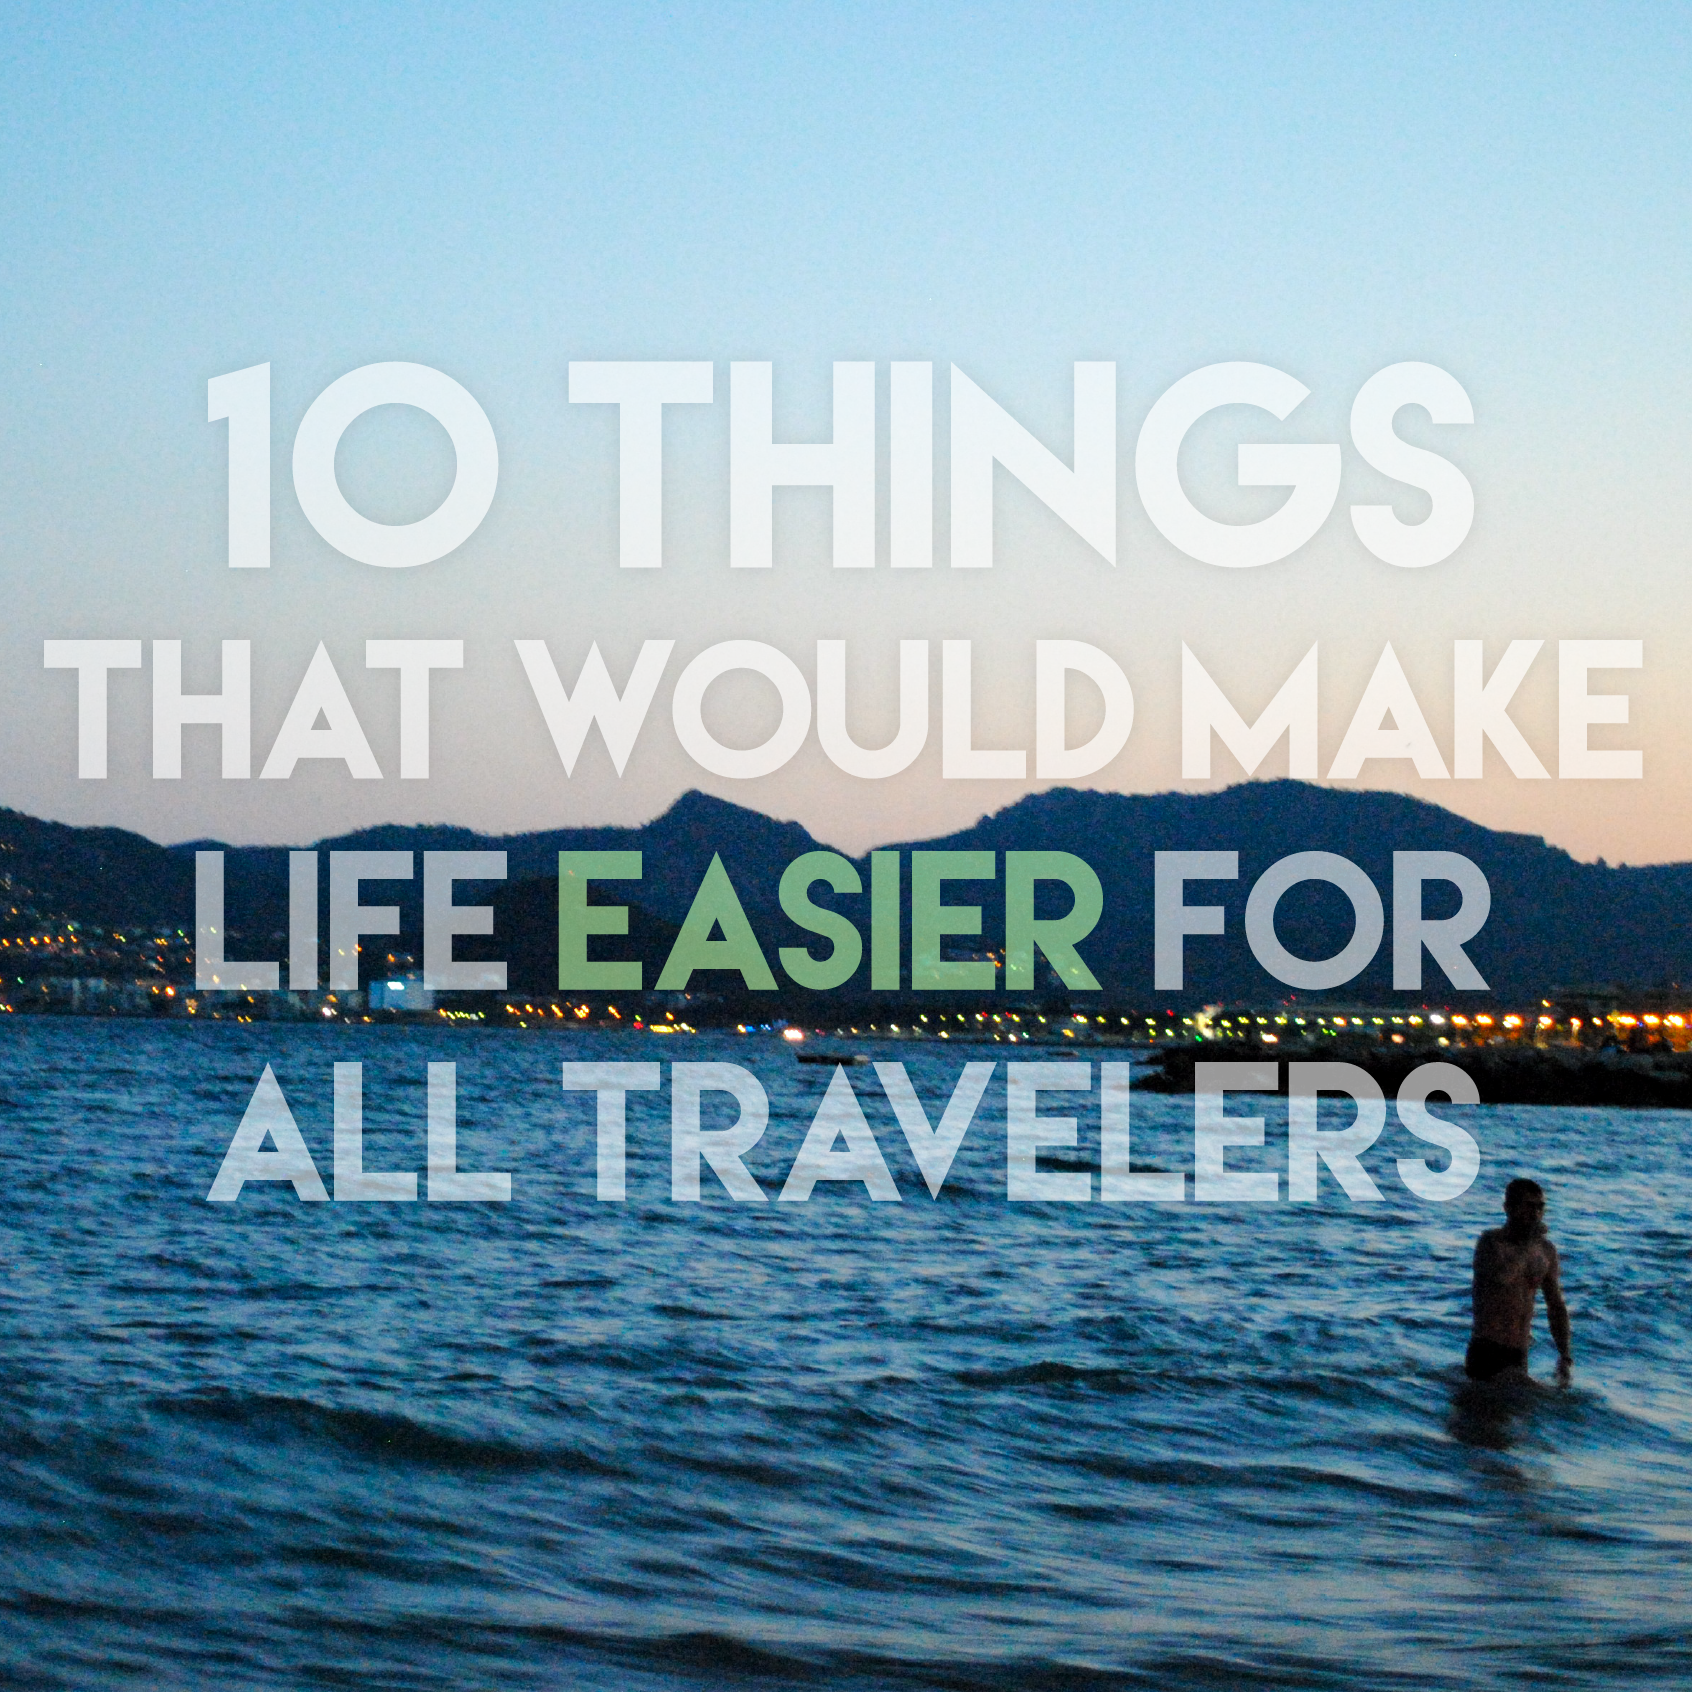 10 Things That Would Make Life Easier for All Travelers